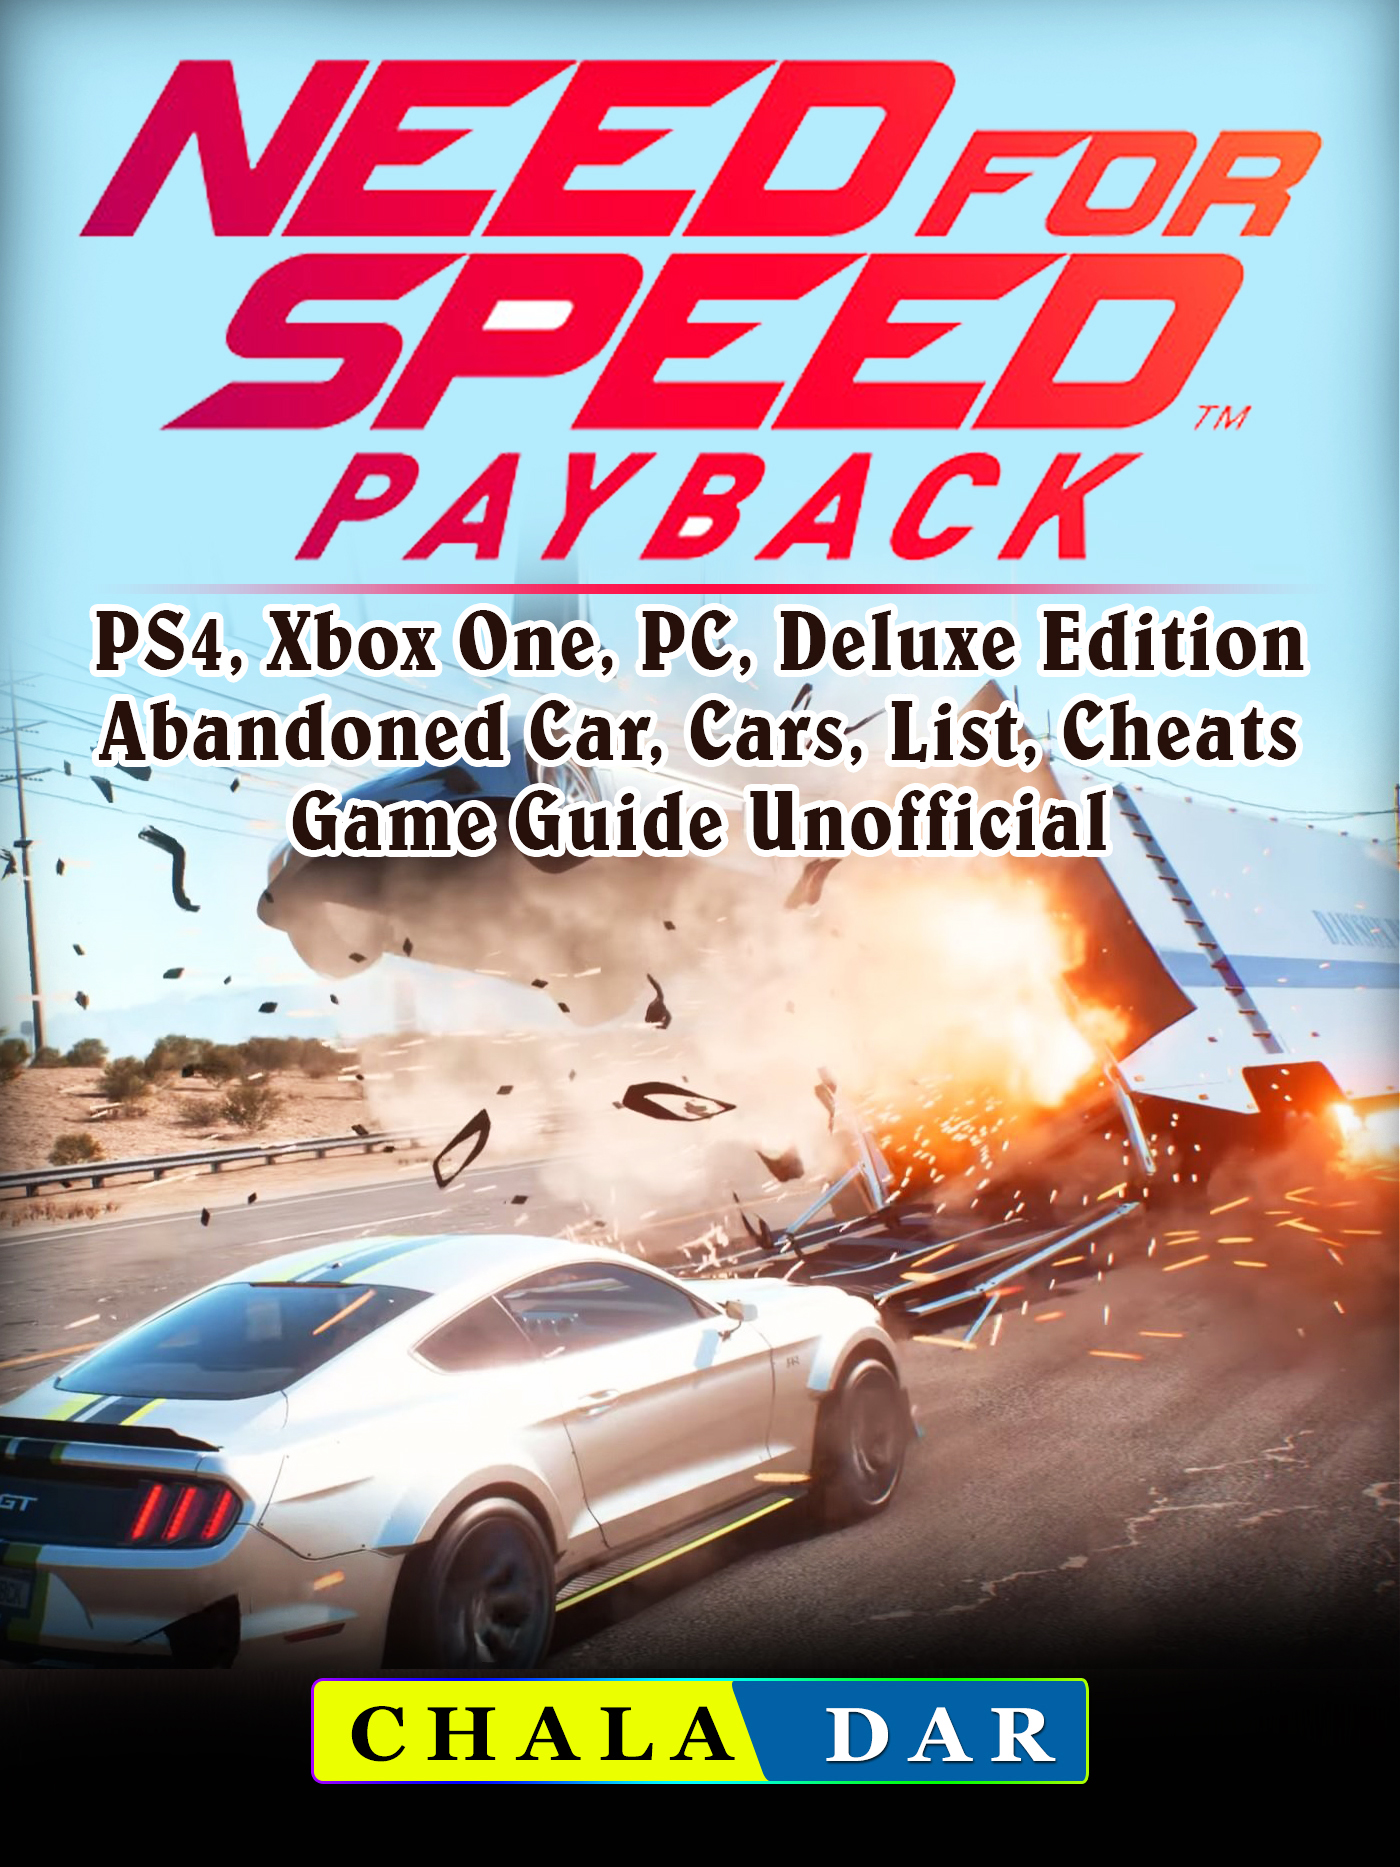 need for speed payback ps4 xbox one pc deluxe edition abandoned car cars list cheats. Black Bedroom Furniture Sets. Home Design Ideas